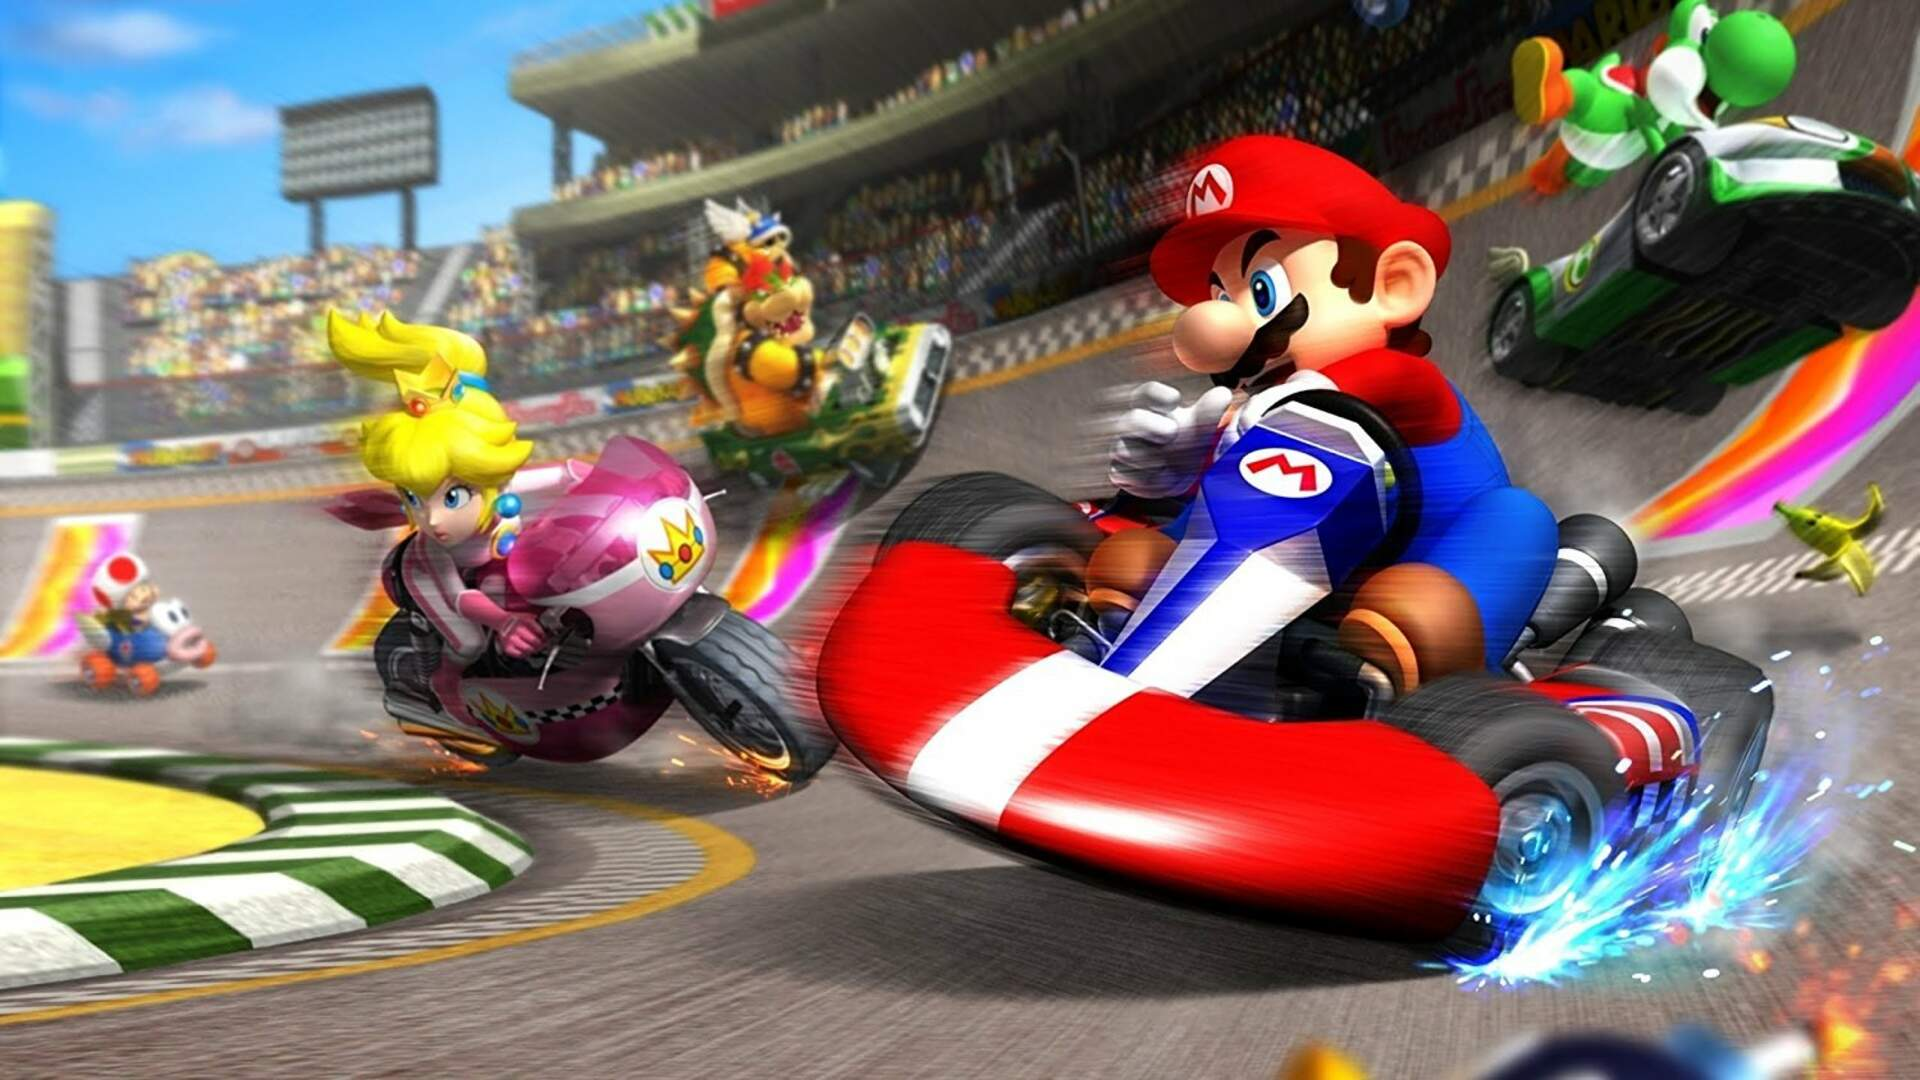 Mario Kart Tour Locks 200cc Behind Subscription Pass